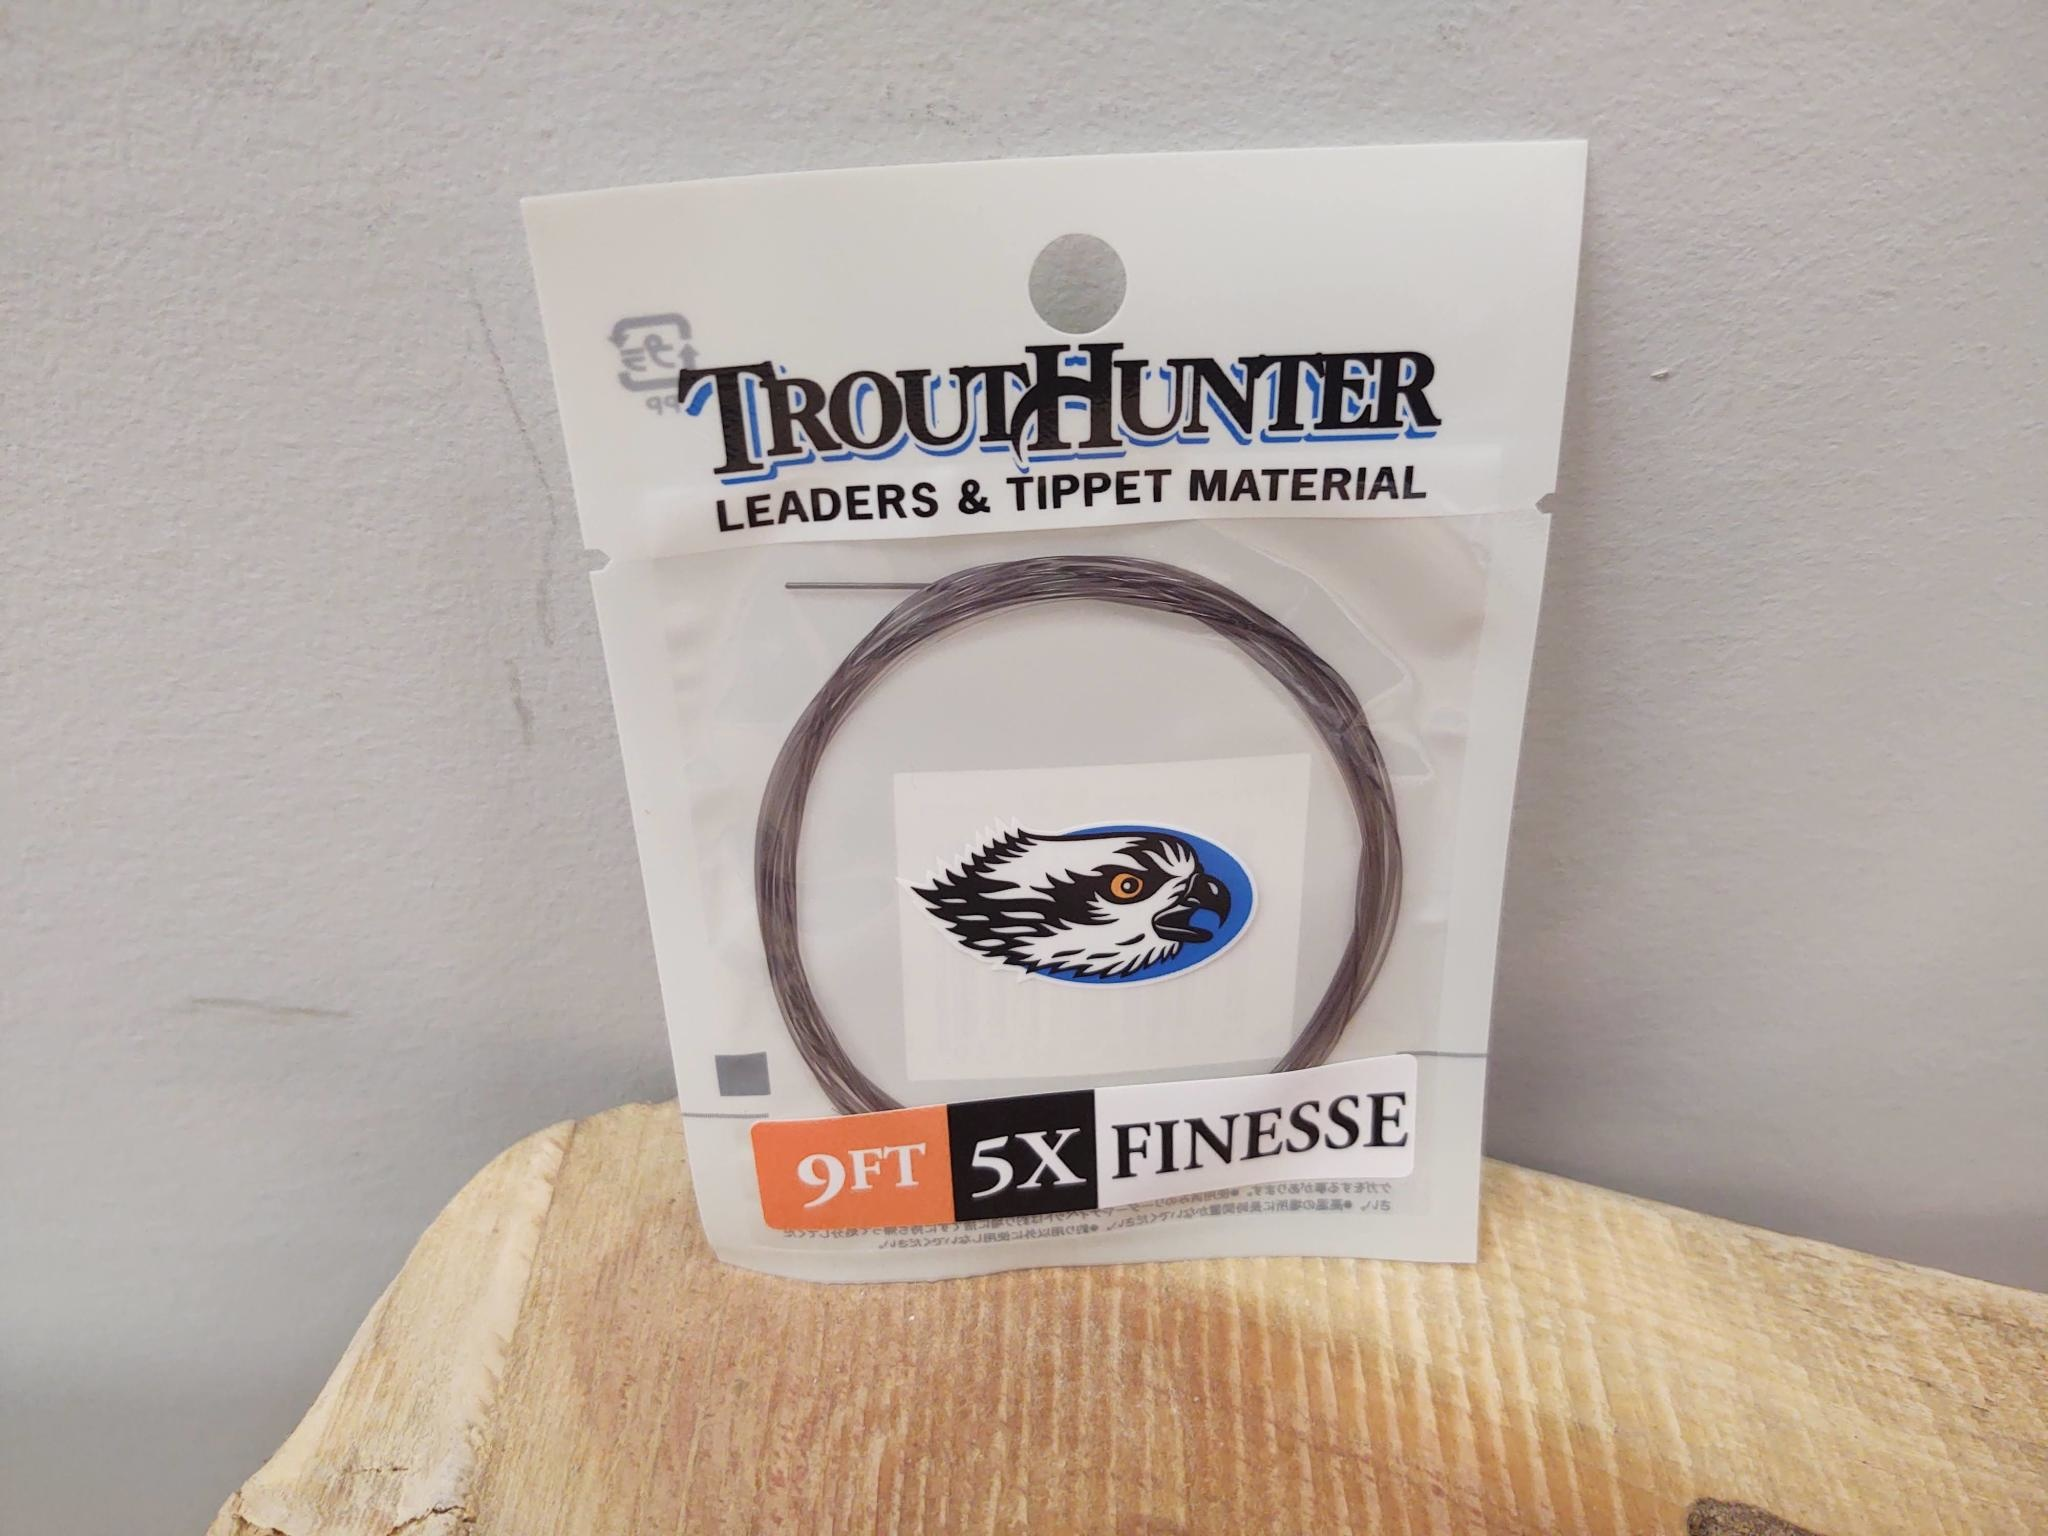 TROUTHUNTER TROUTHUNTER FINESSE  - 9'  5X LEADER